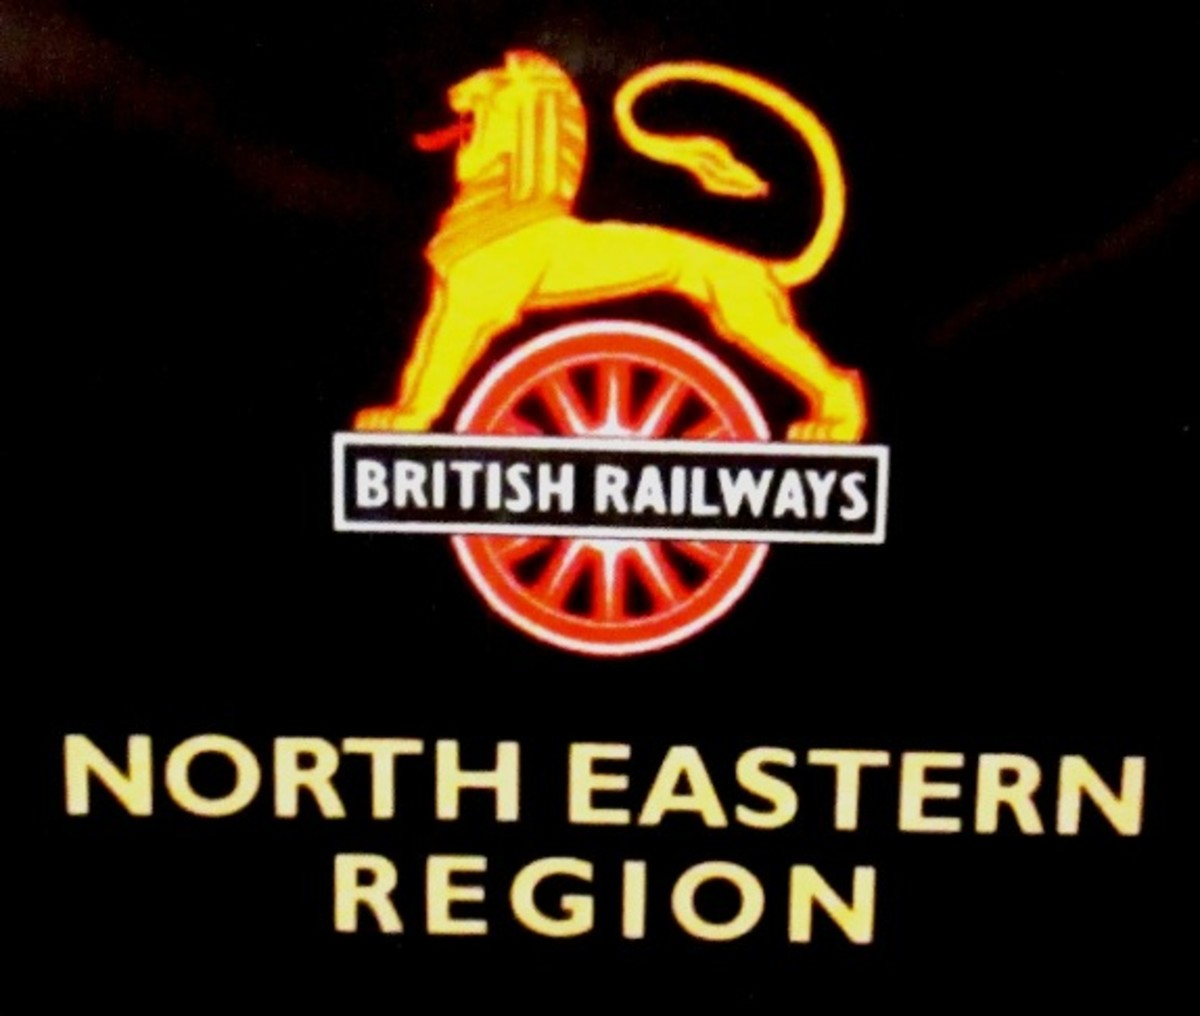 From 1948 this was the totem of British Railways' North Eastern Region - corresponded with the former pre-Grouping North Eastern Railway